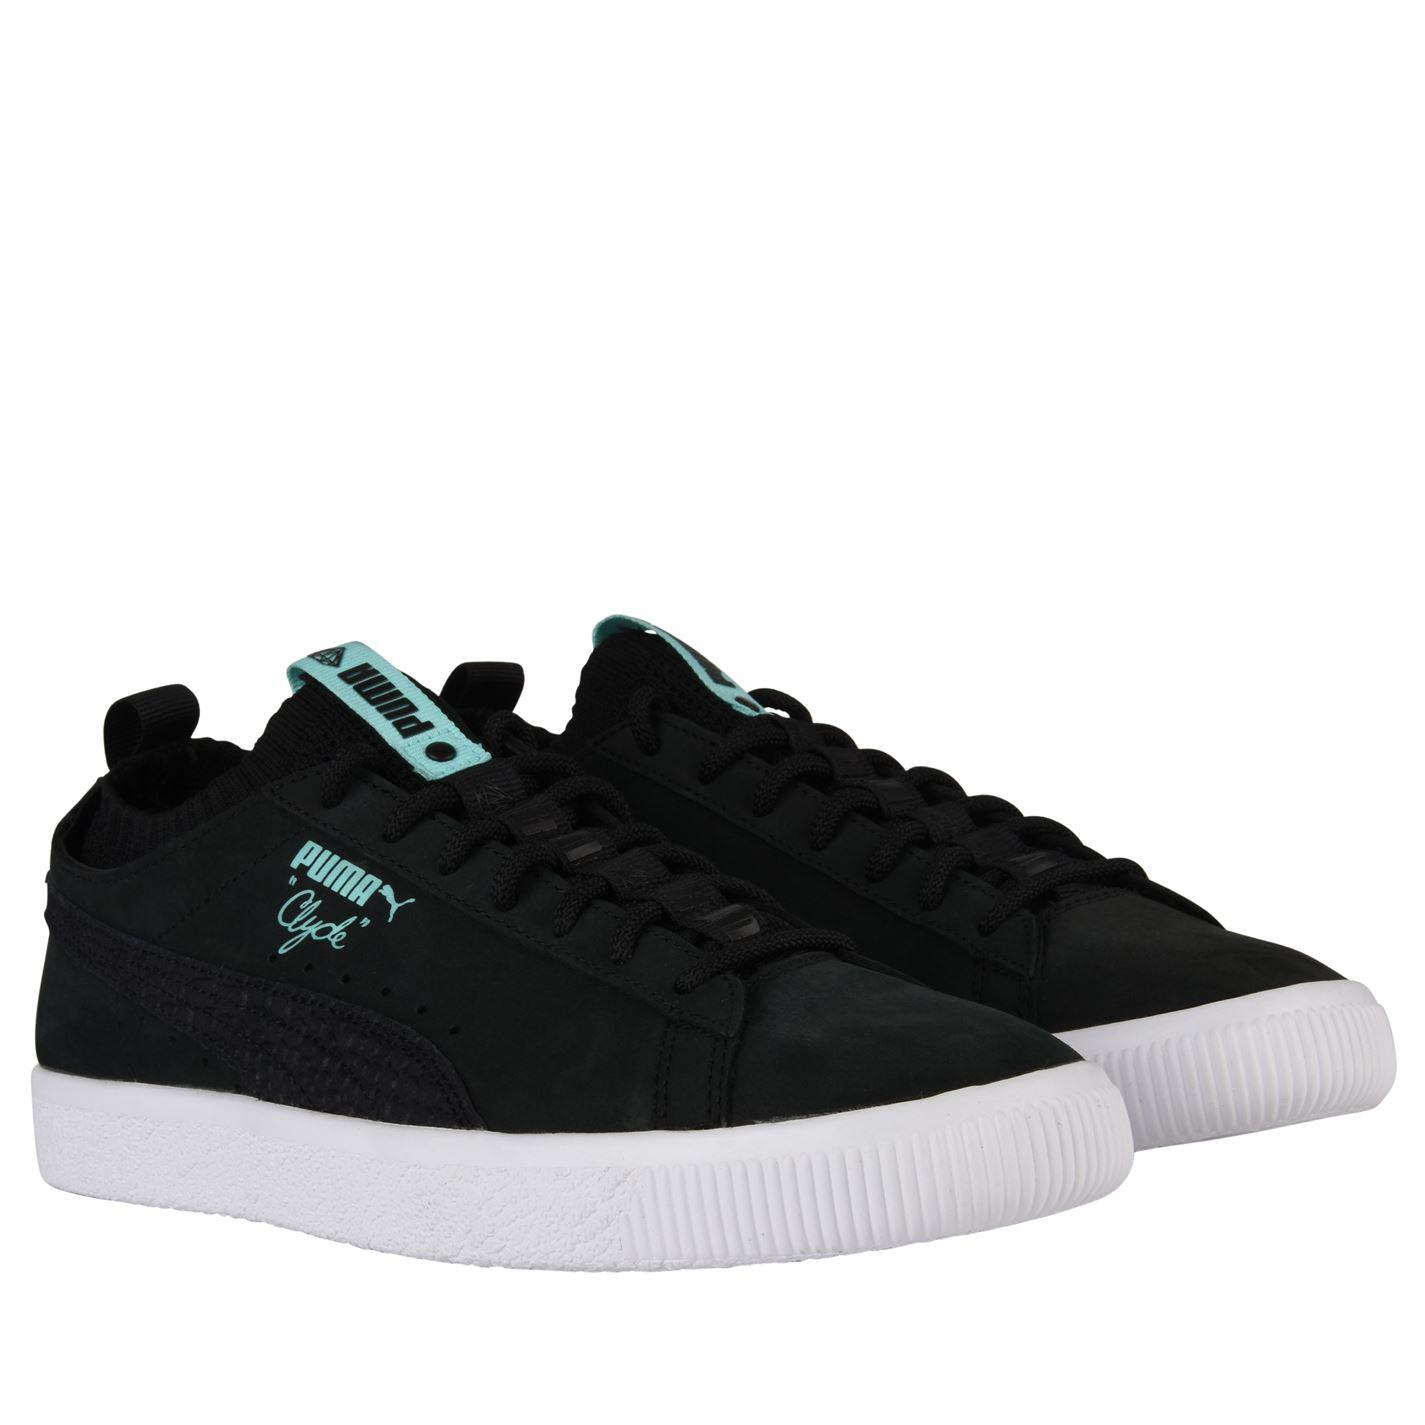 Lyst Trainers Men Diamond Black Clyde For In Puma Sock Lo wxFRHA